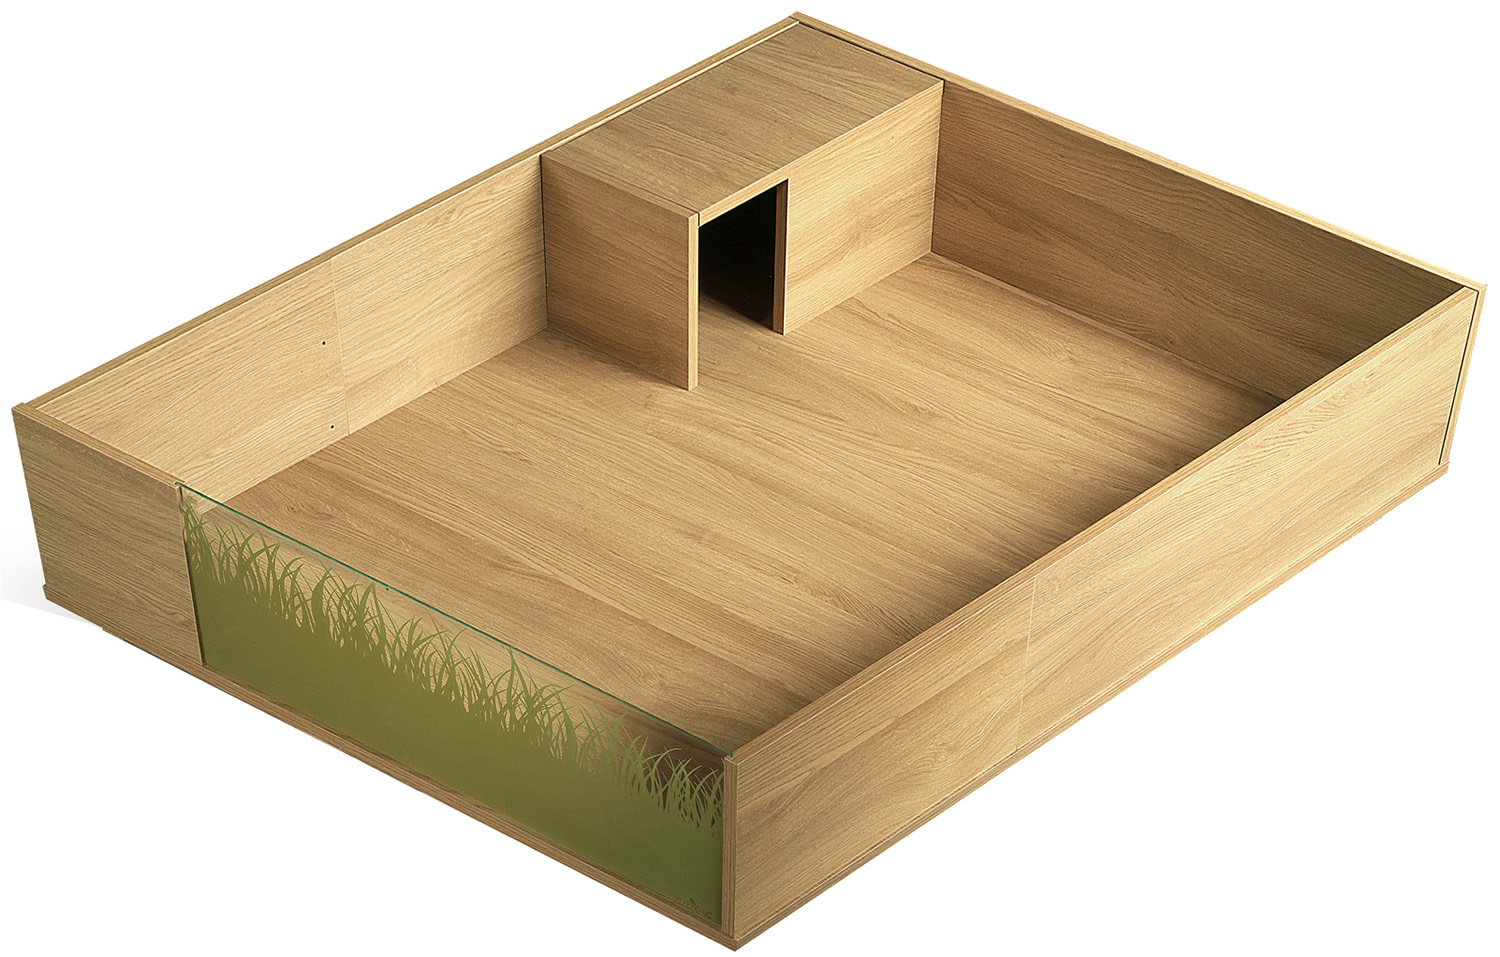 Tortoise table species specific products vivexotic vivariums - Tortoise Table Species Specific Products Vivexotic Vivariums 13